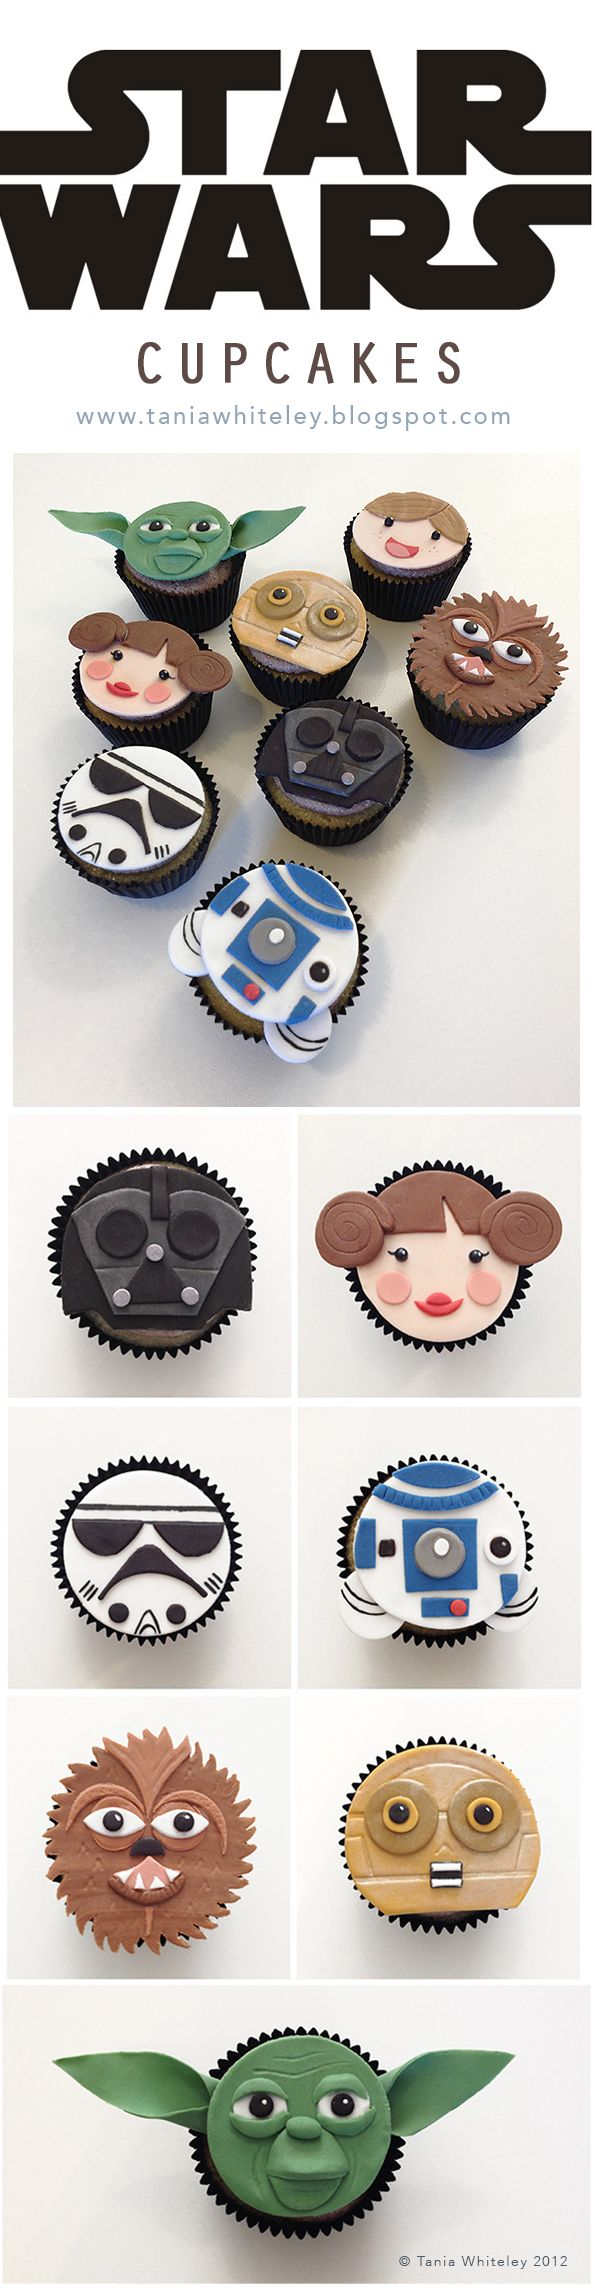 star-wars-cup-cakes